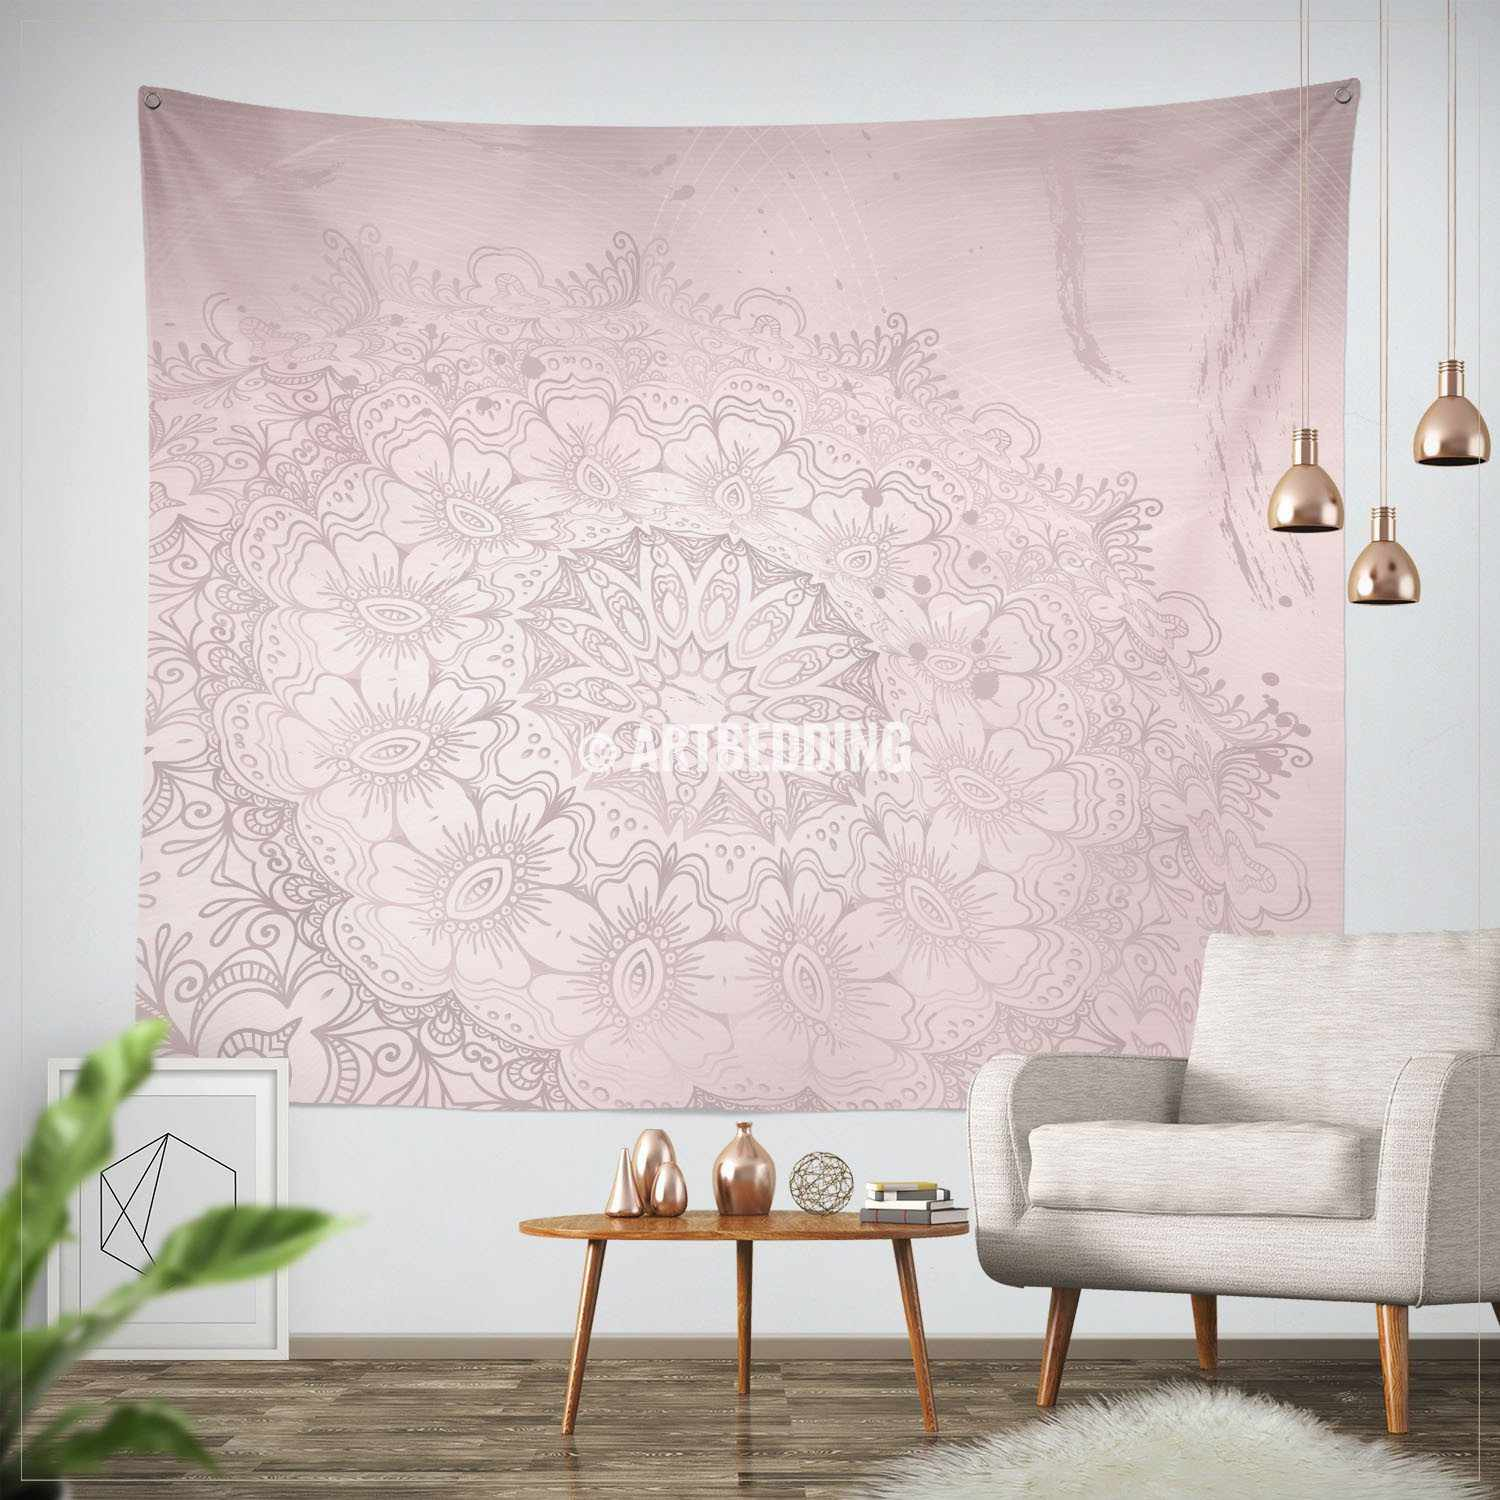 Exceptionnel ... Bohemian TAPESTRY, Ash Pink U0026 Gray Mehendi Henna Tattoo Style Wall Art  Print, Boho ...